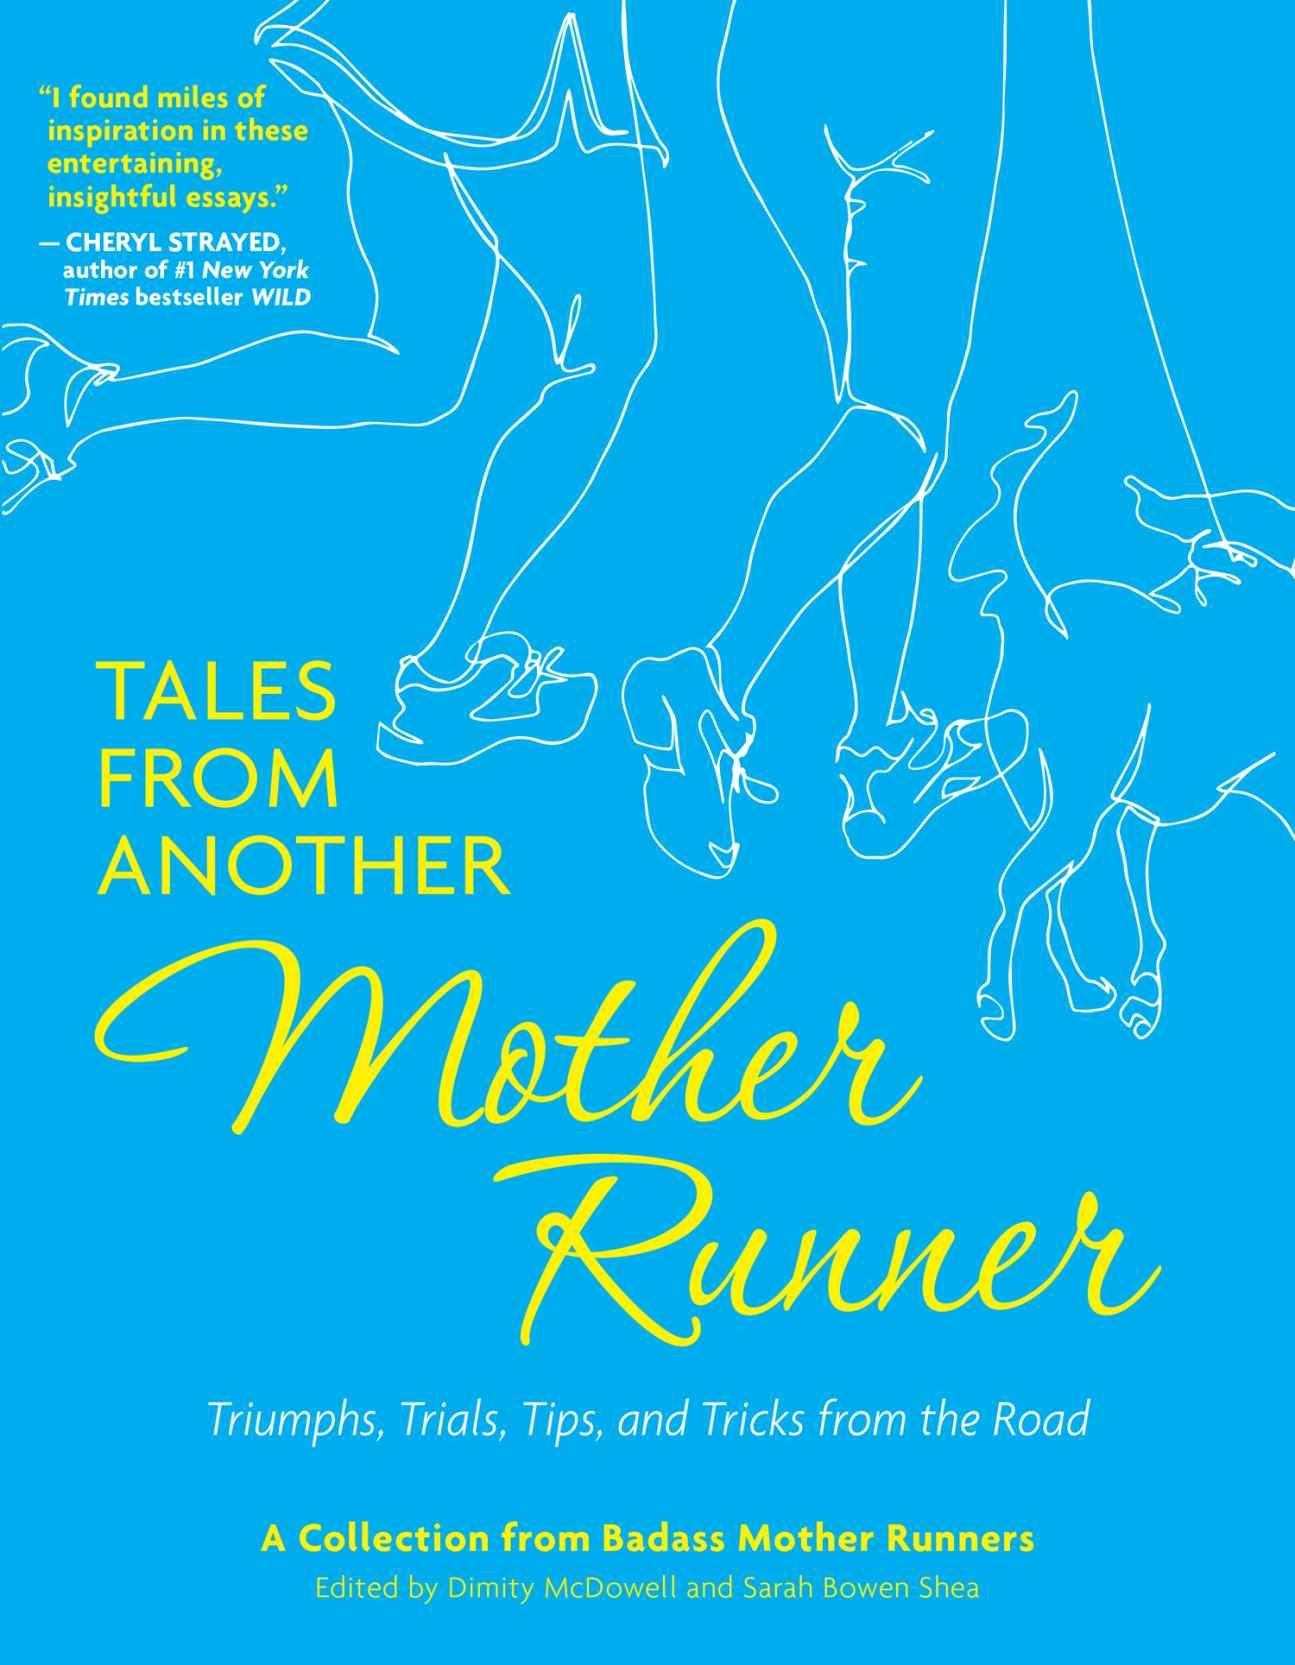 amazon: tales from another mother runner: triumphs, trials